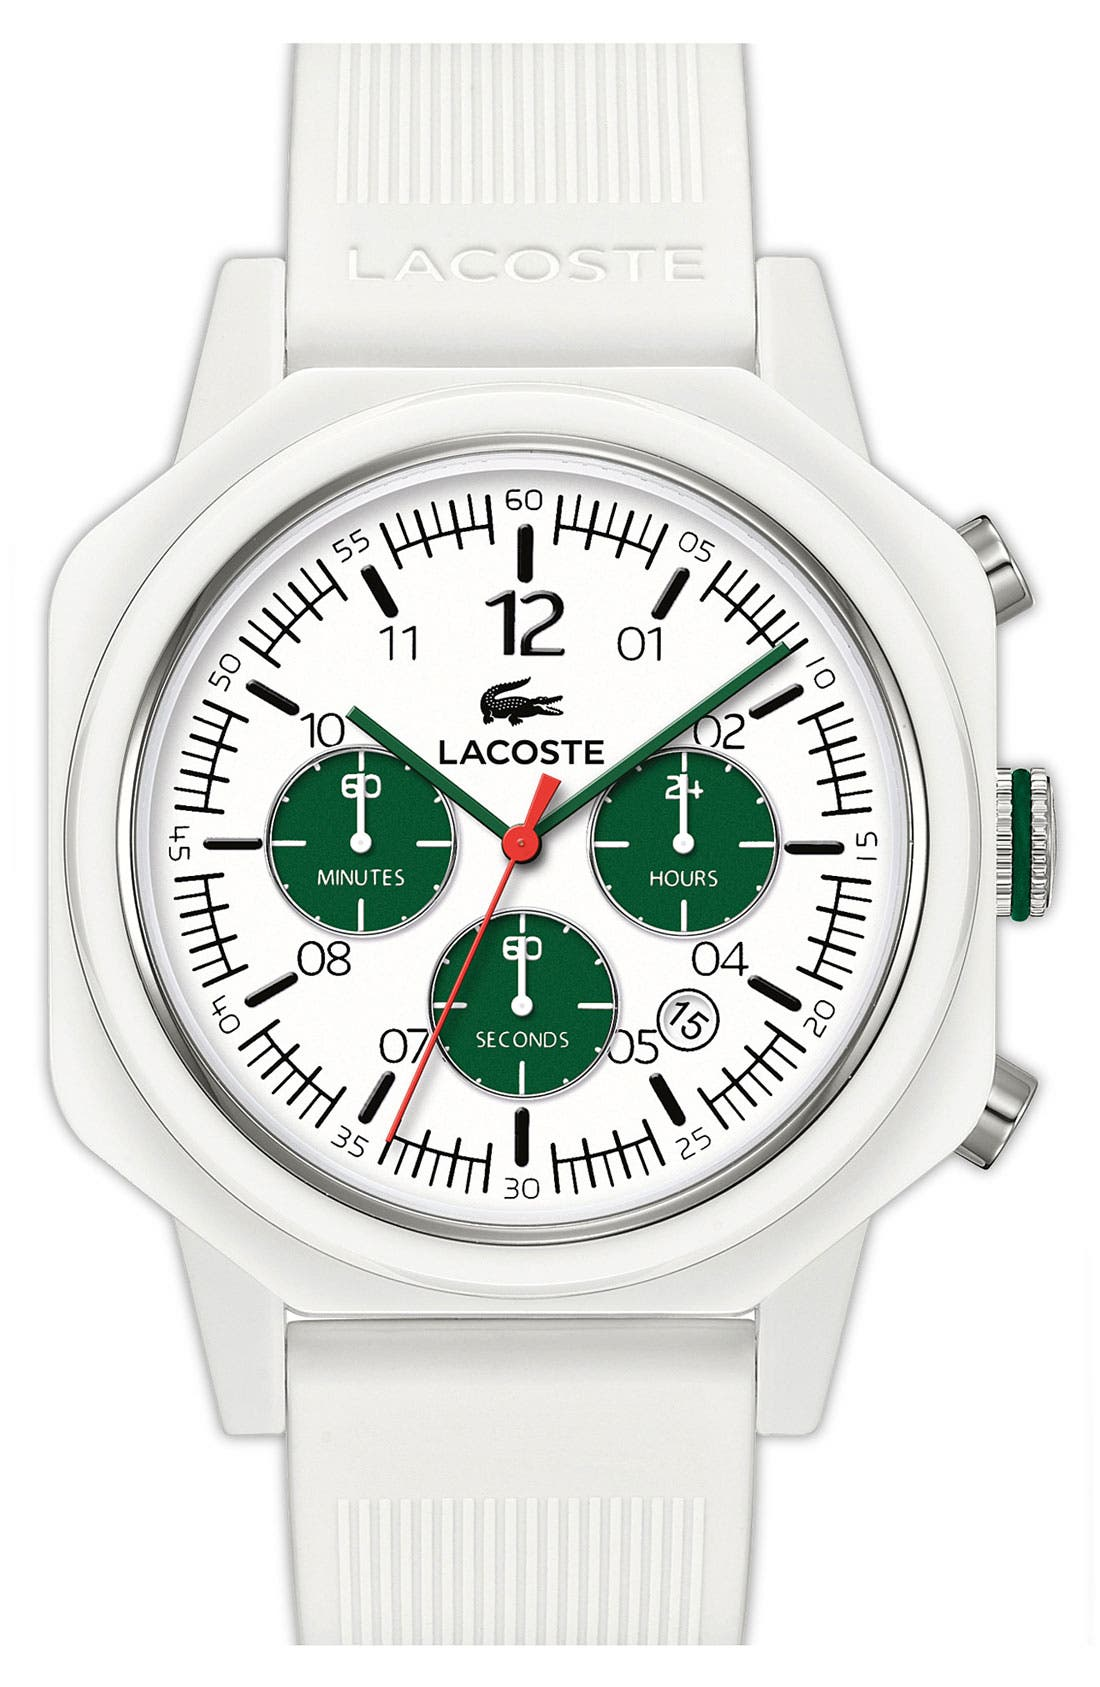 Alternate Image 1 Selected - Lacoste '80th Anniversary' Chronograph Watch, 44mm